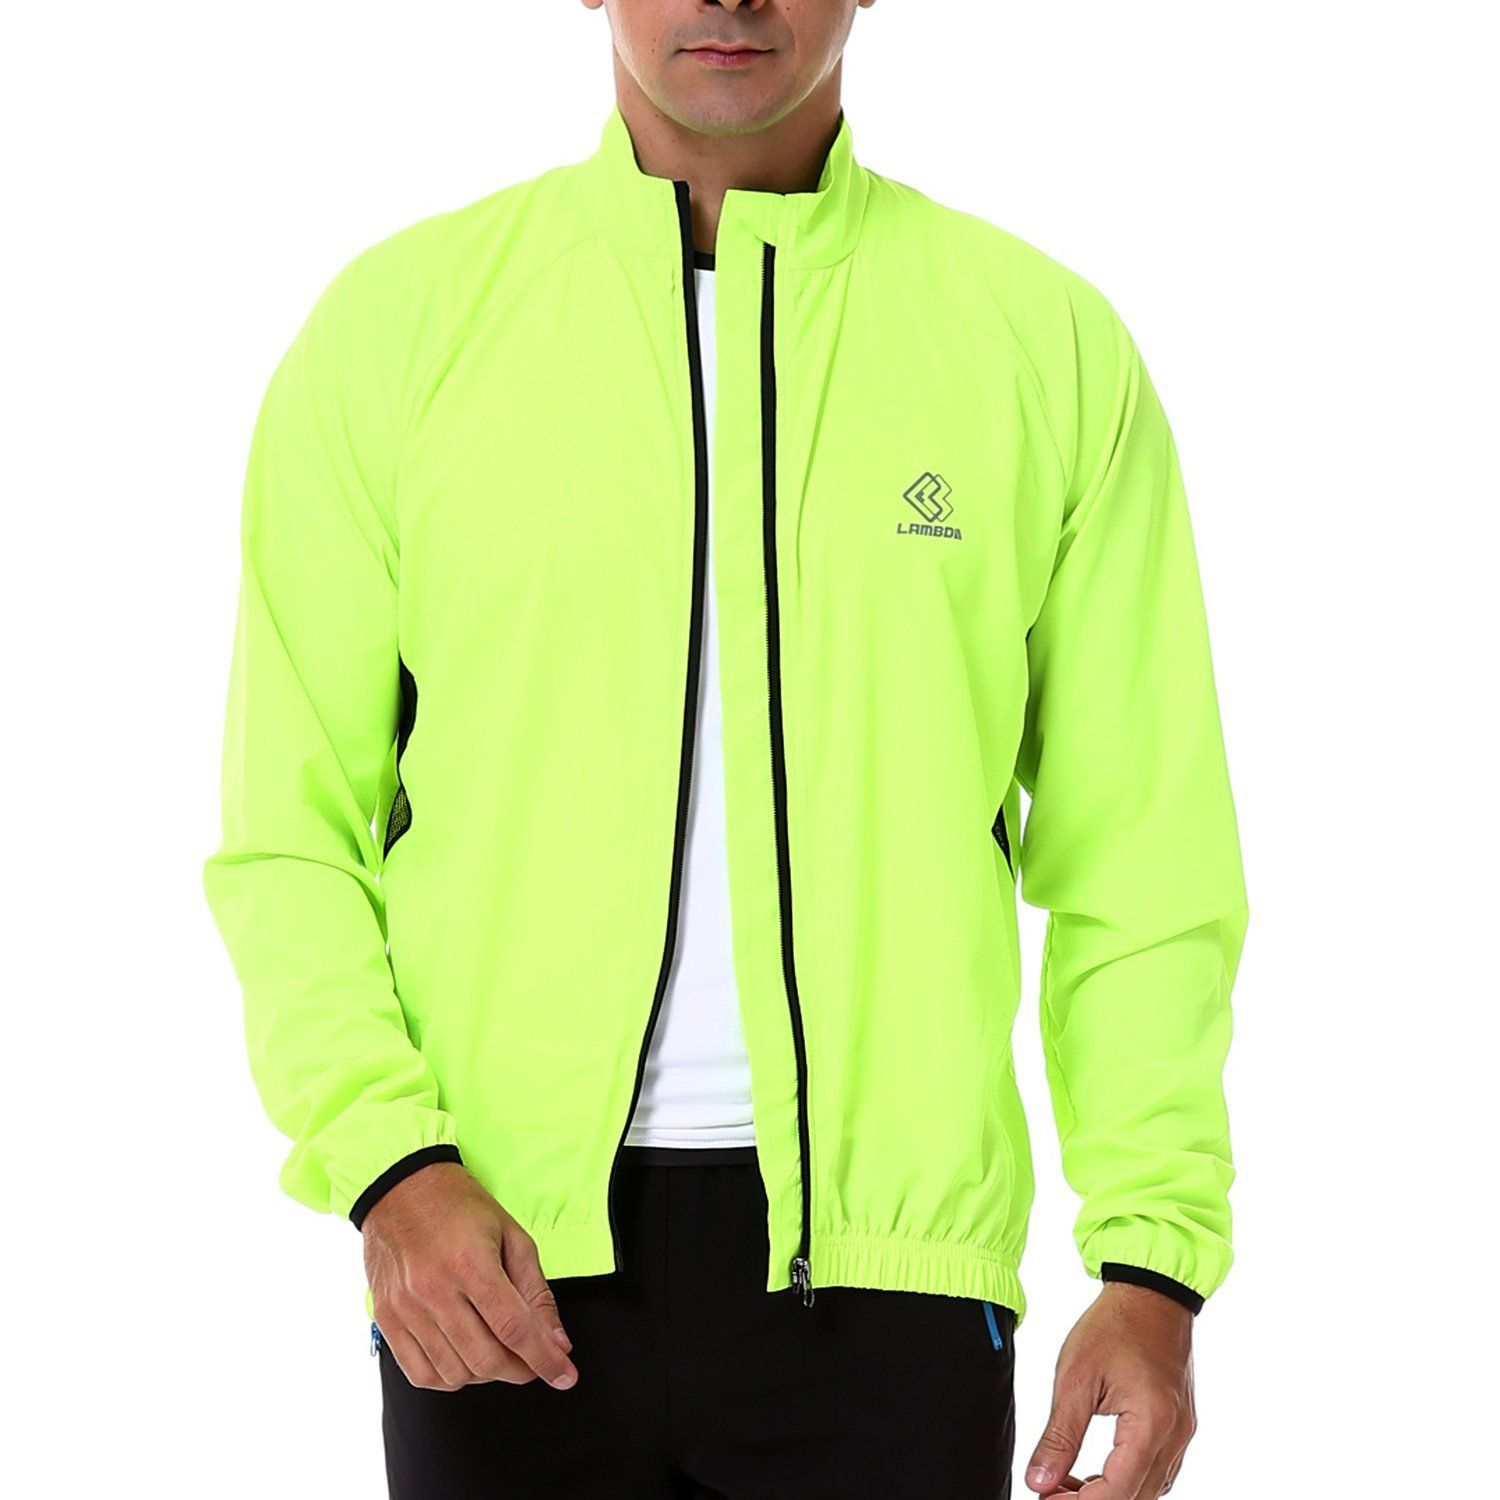 4ucycling Lambda Men's Windproof Cycling Jacket Quick Dry Outdoor Windbreaker Jacket * Want additional info? Click on the image.